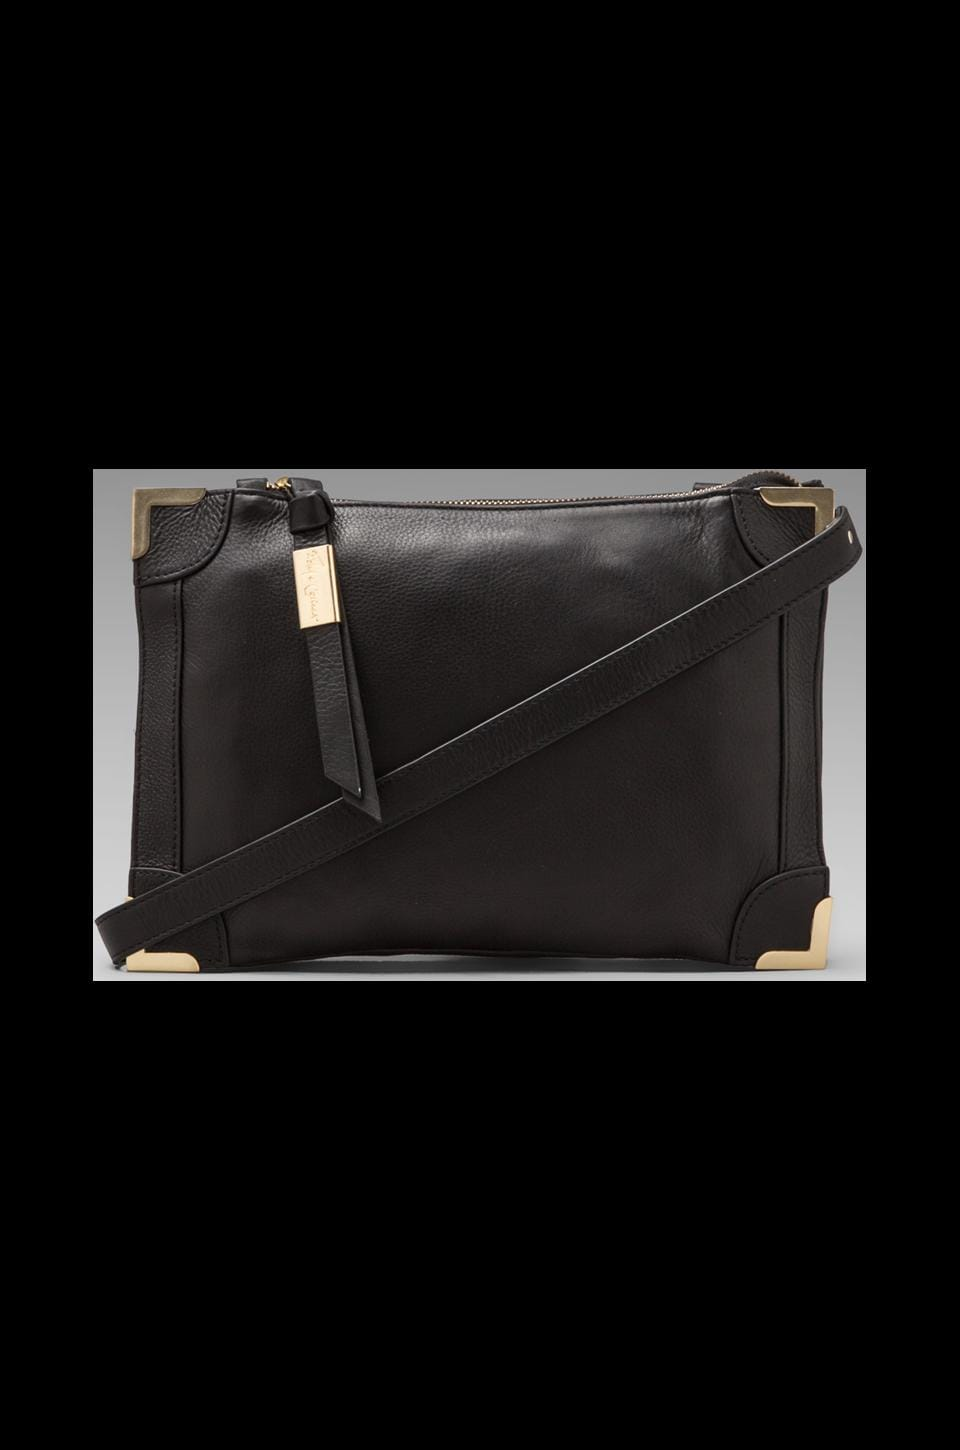 Foley + Corinna Framed Crossbody Bag in Black